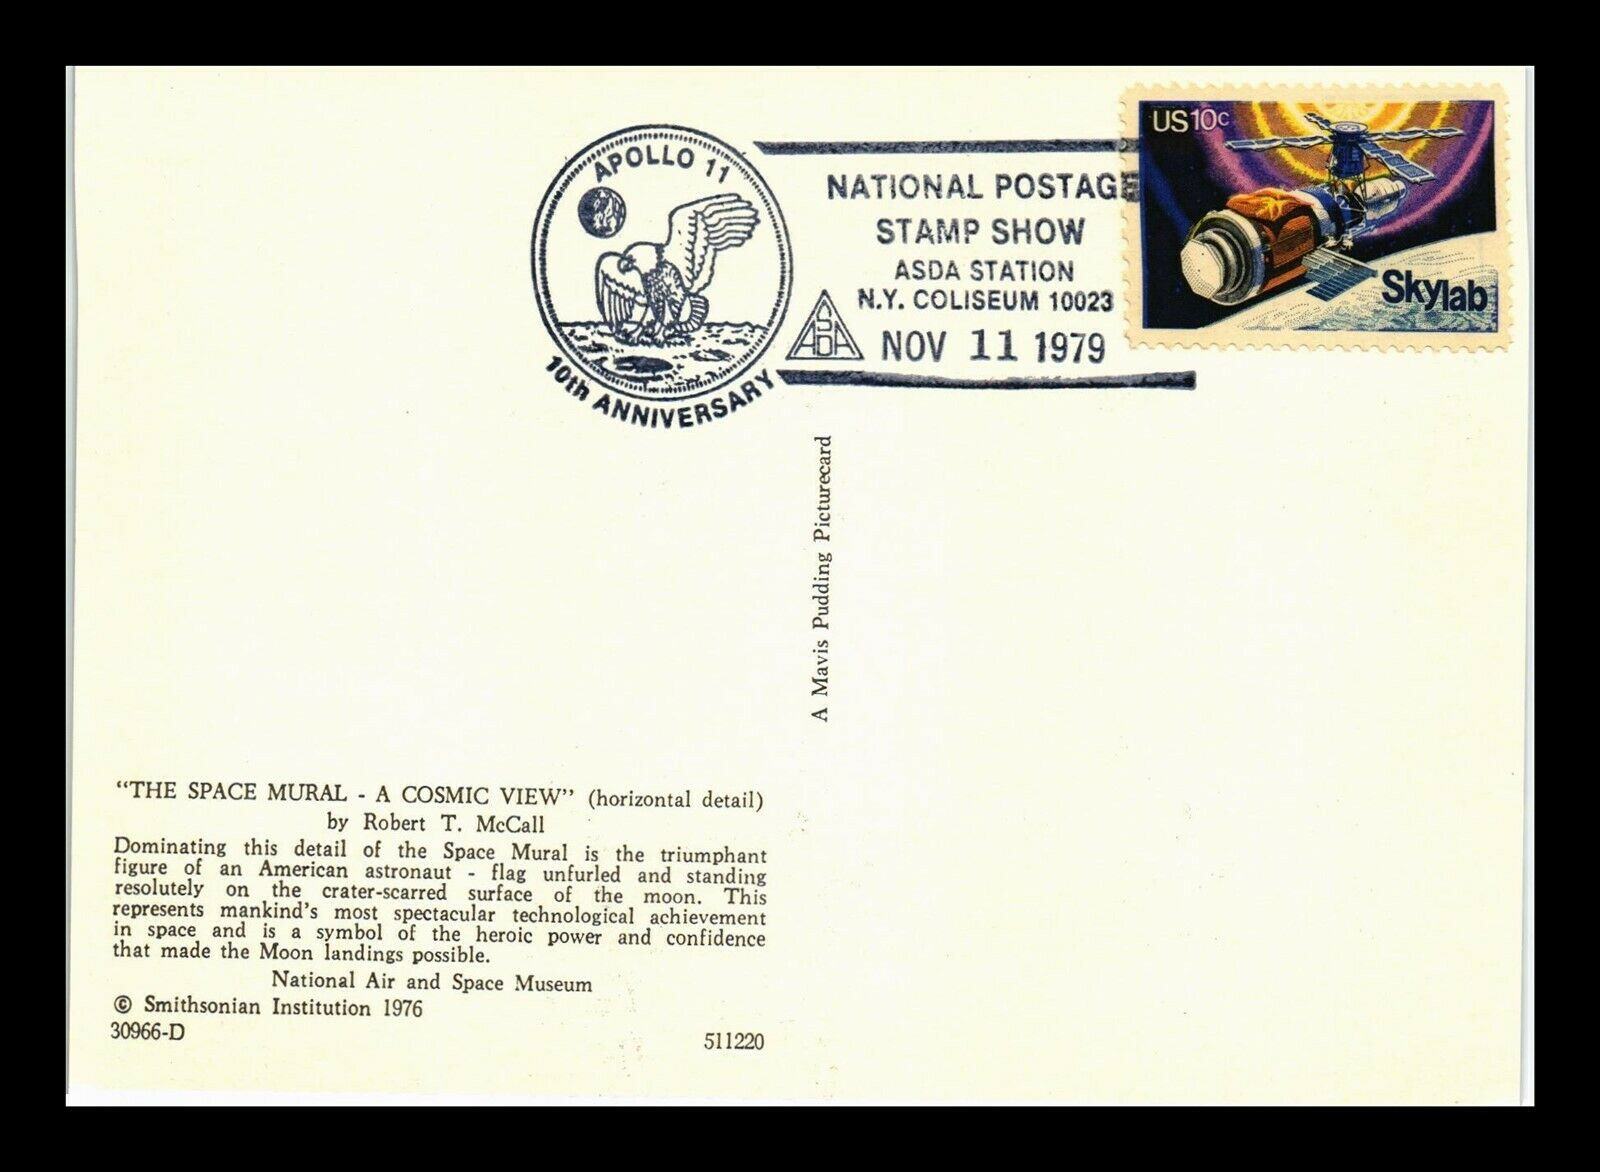 DR JIM STAMPS US POSTCARD APOLLO 11 ASDA STAMP SHOW NEW YORK CONTINENTAL SIZE - $0.25